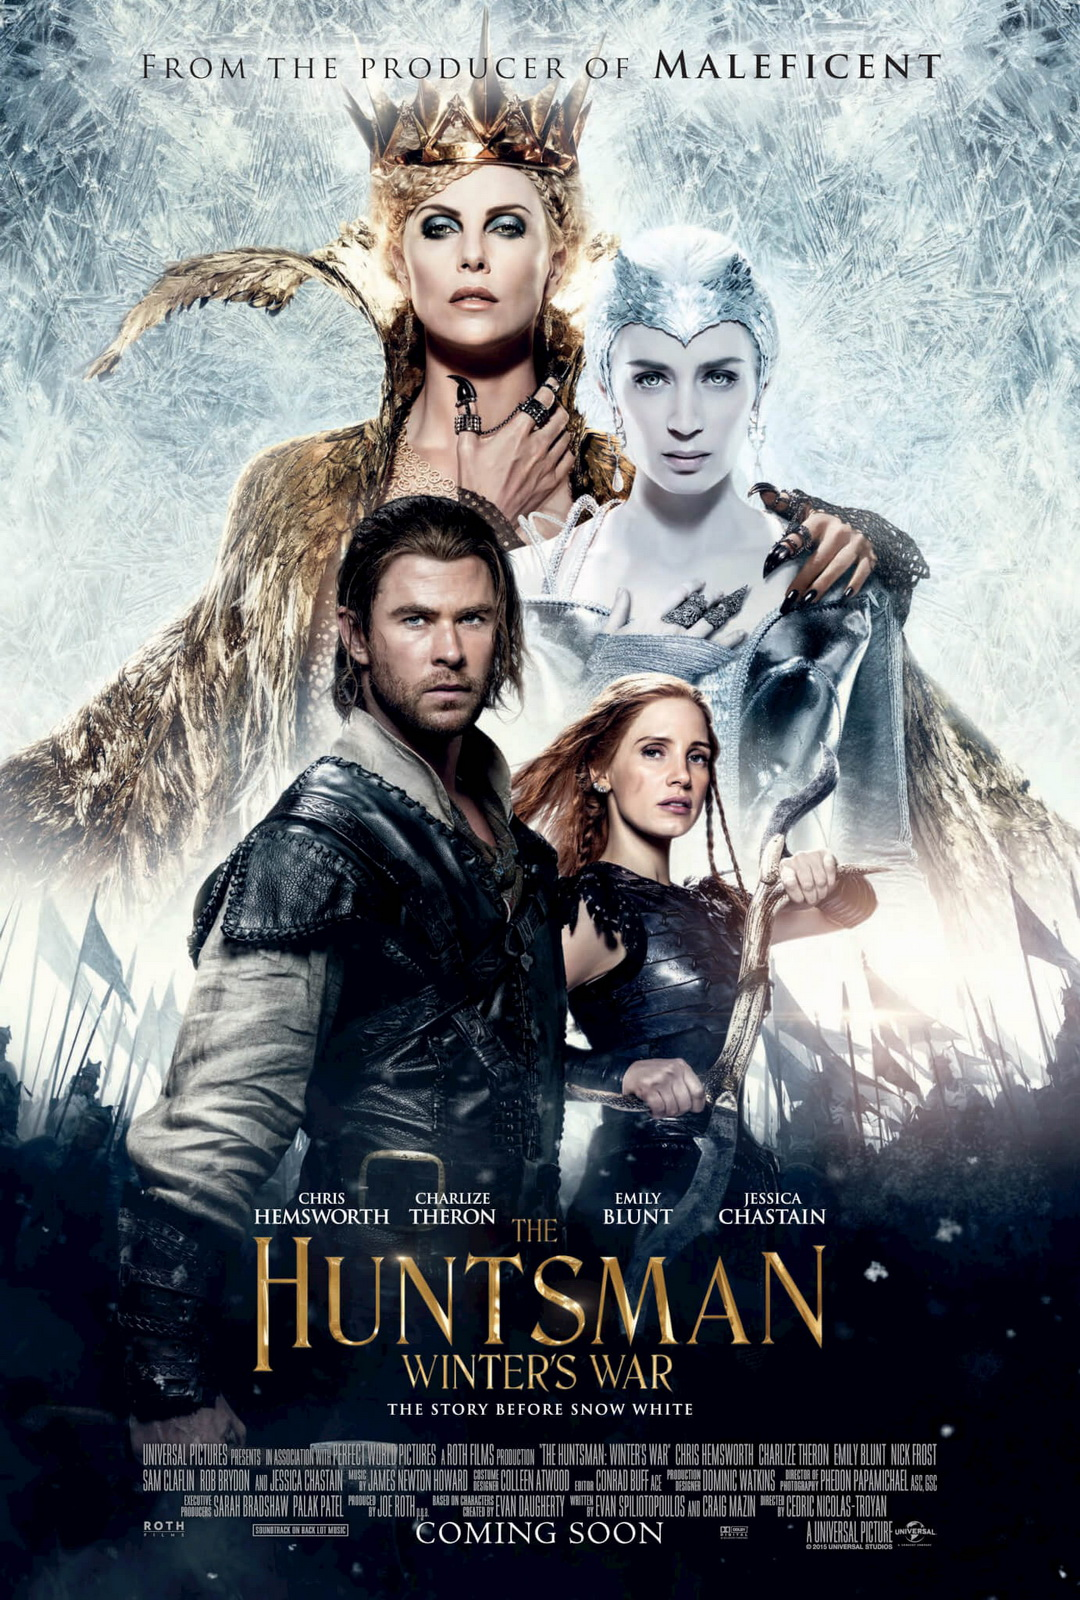 Hollywood The Huntsman Winters War (2016) Movie Poster